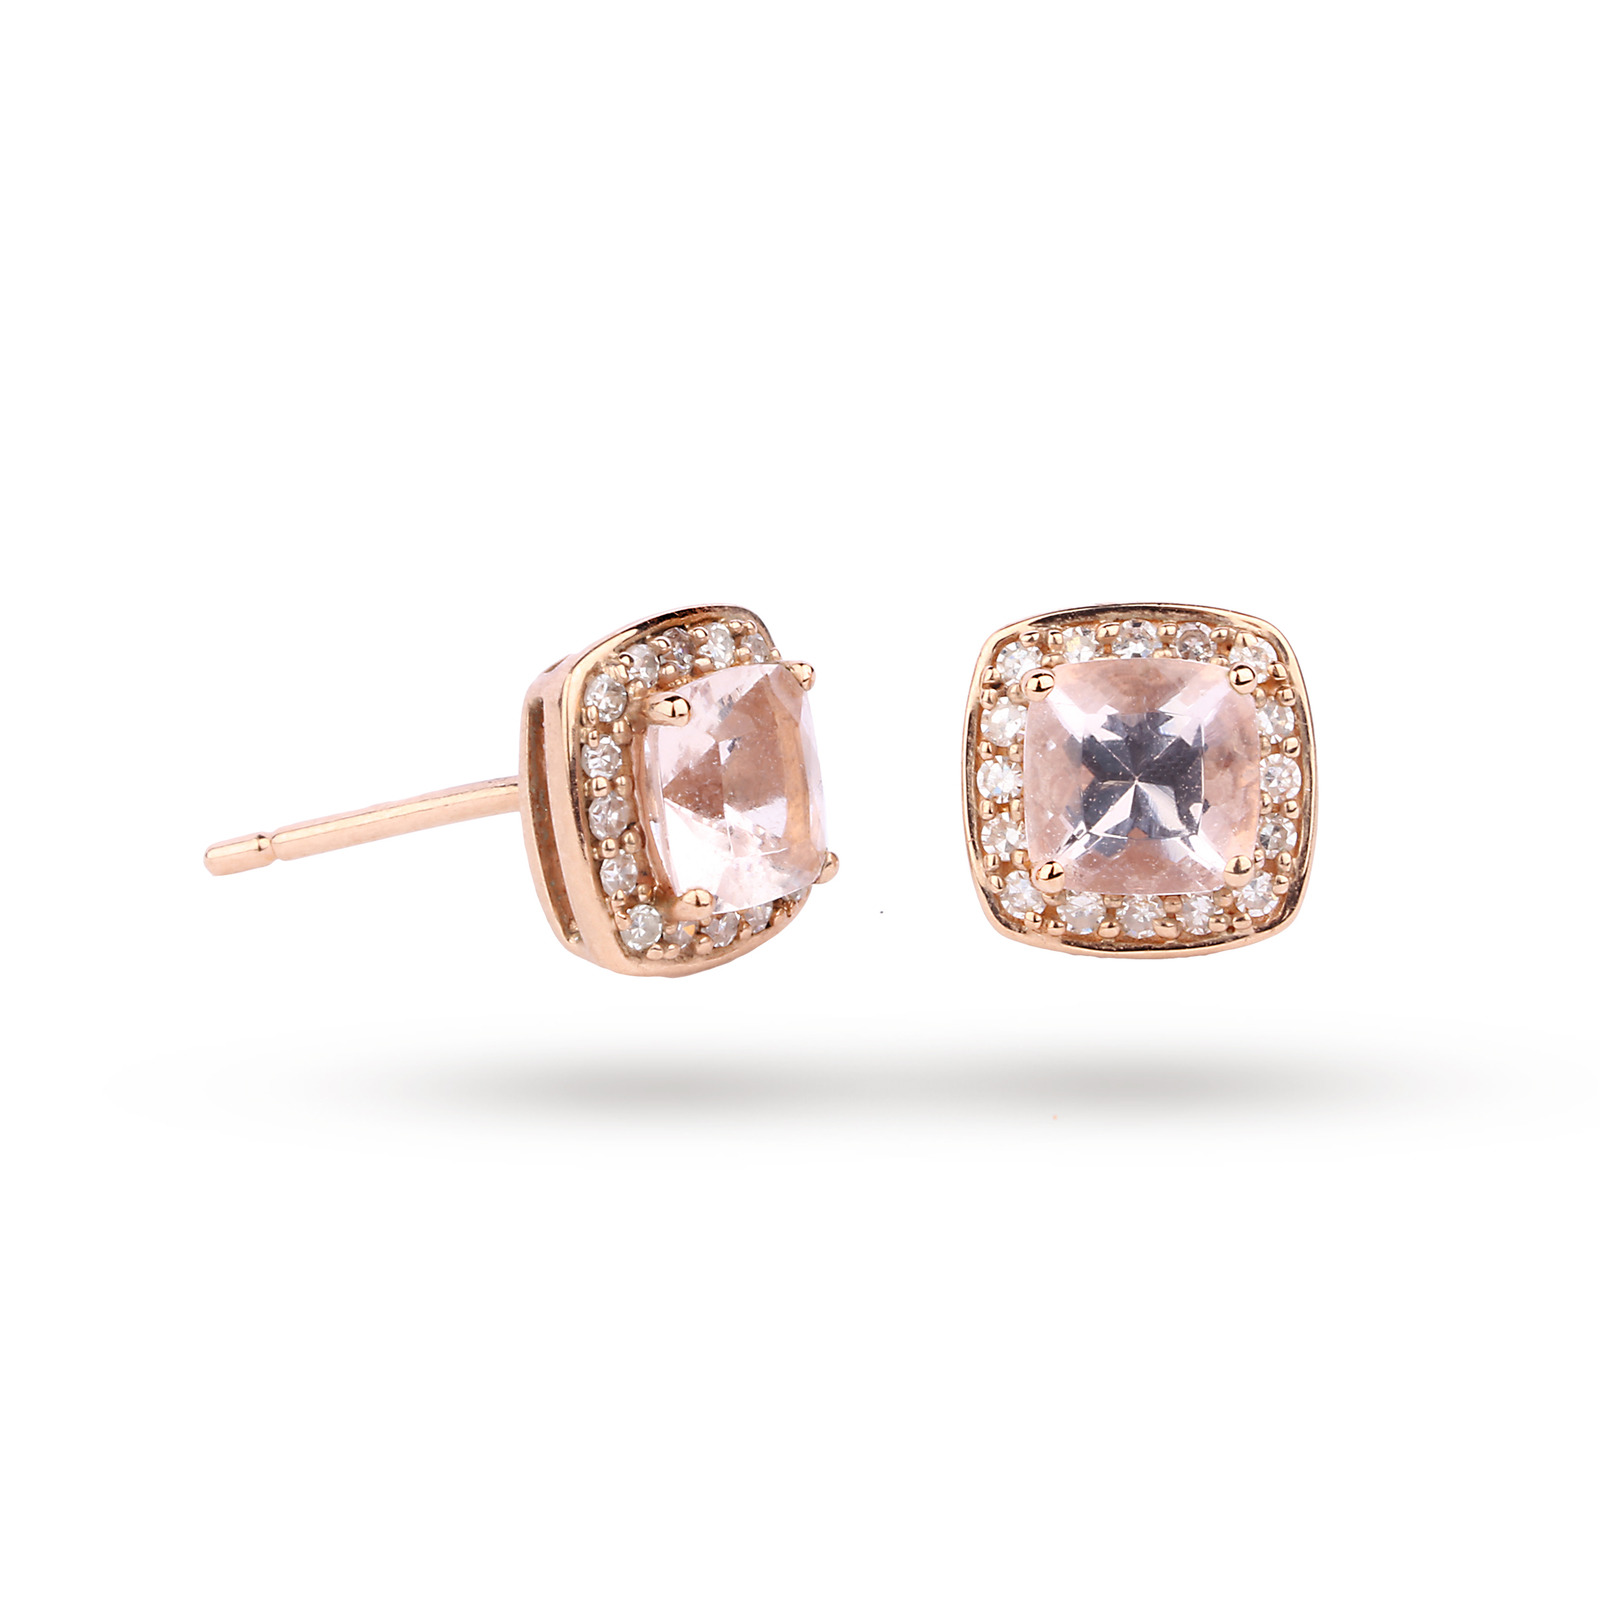 pin blanca stud product gomez morganite monros gold earrings